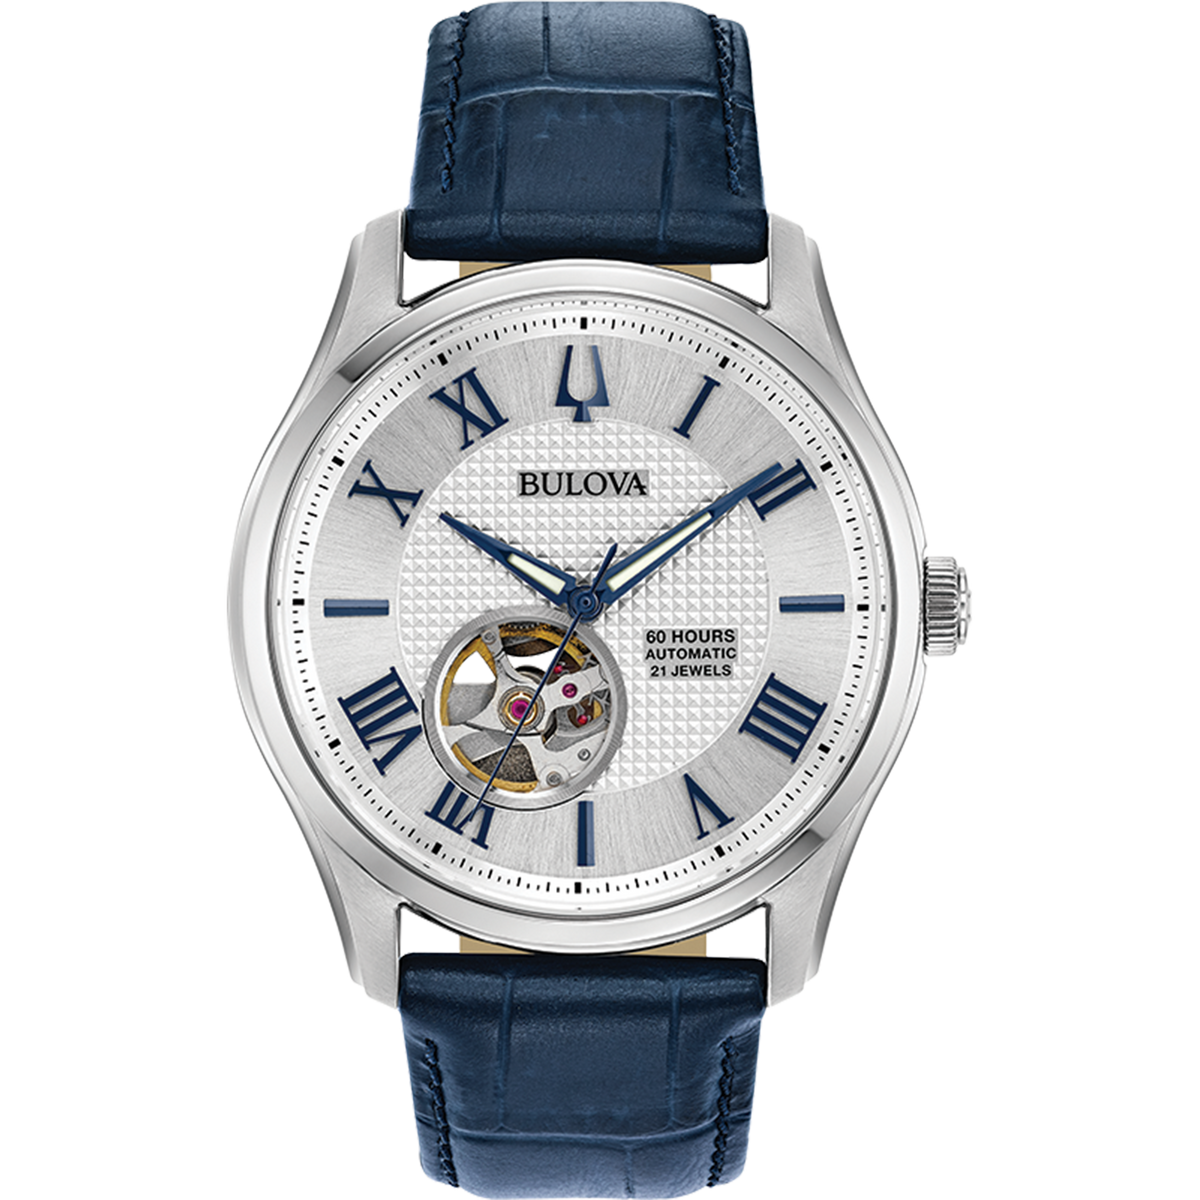 Bulova - Wilton 60 Hour Automatic